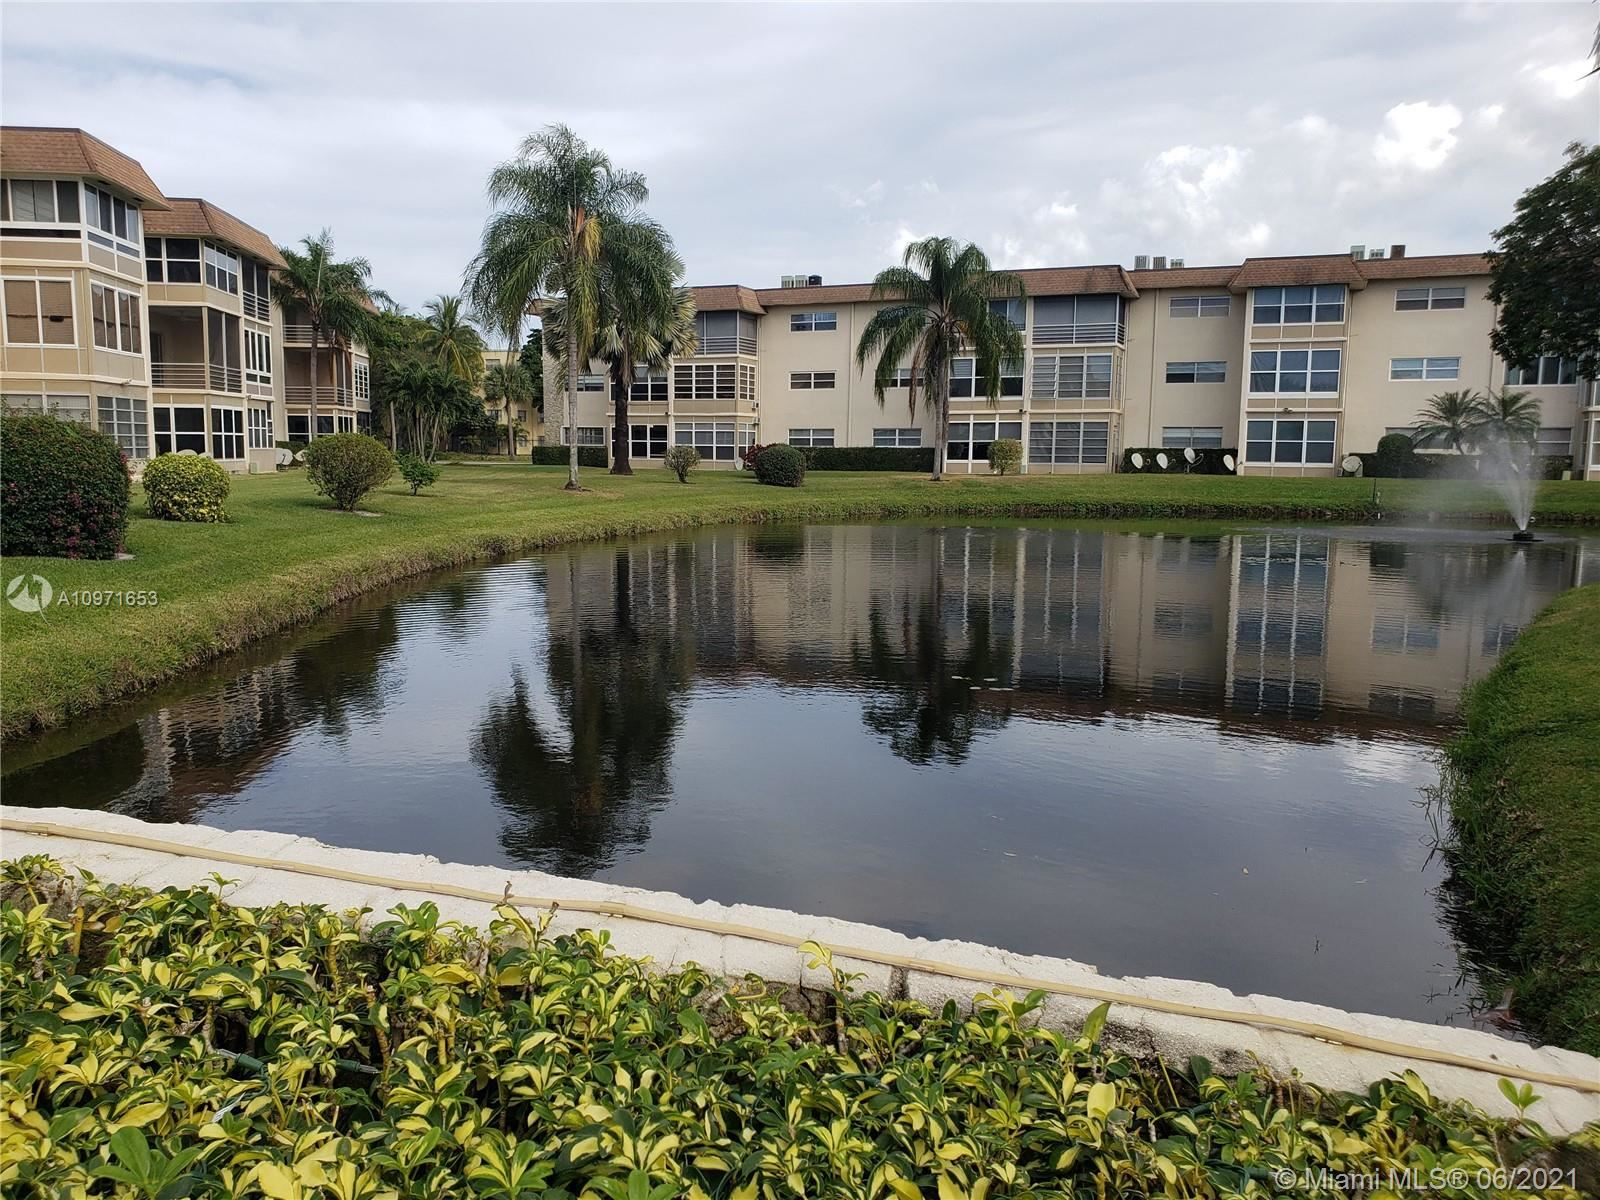 4700 NW 35th St #602, Lauderdale Lakes, FL 33319 - #: A10971653